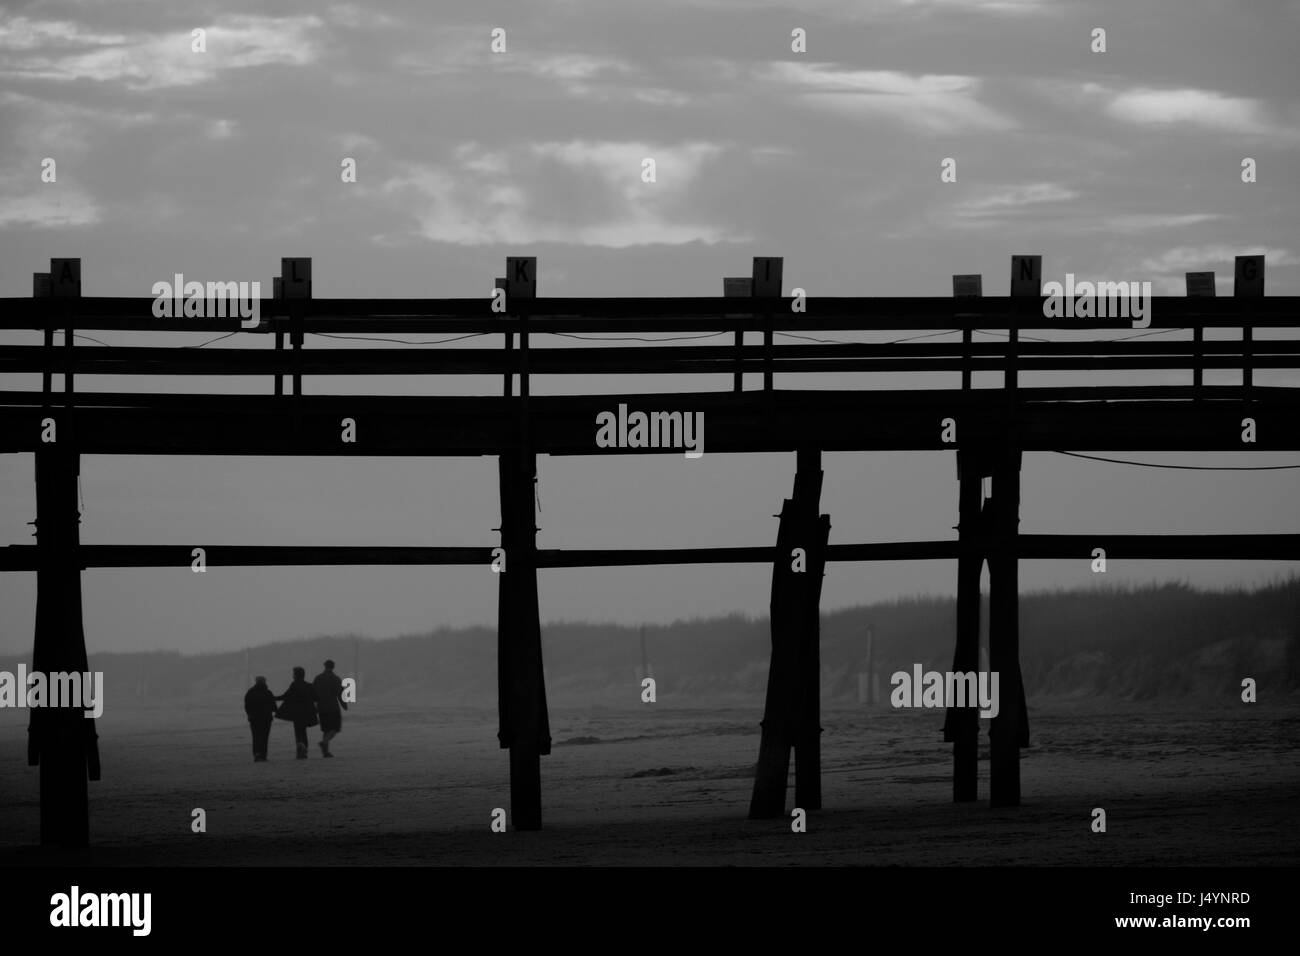 People Walking on the Beach by a Pier, Black and White - Stock Image